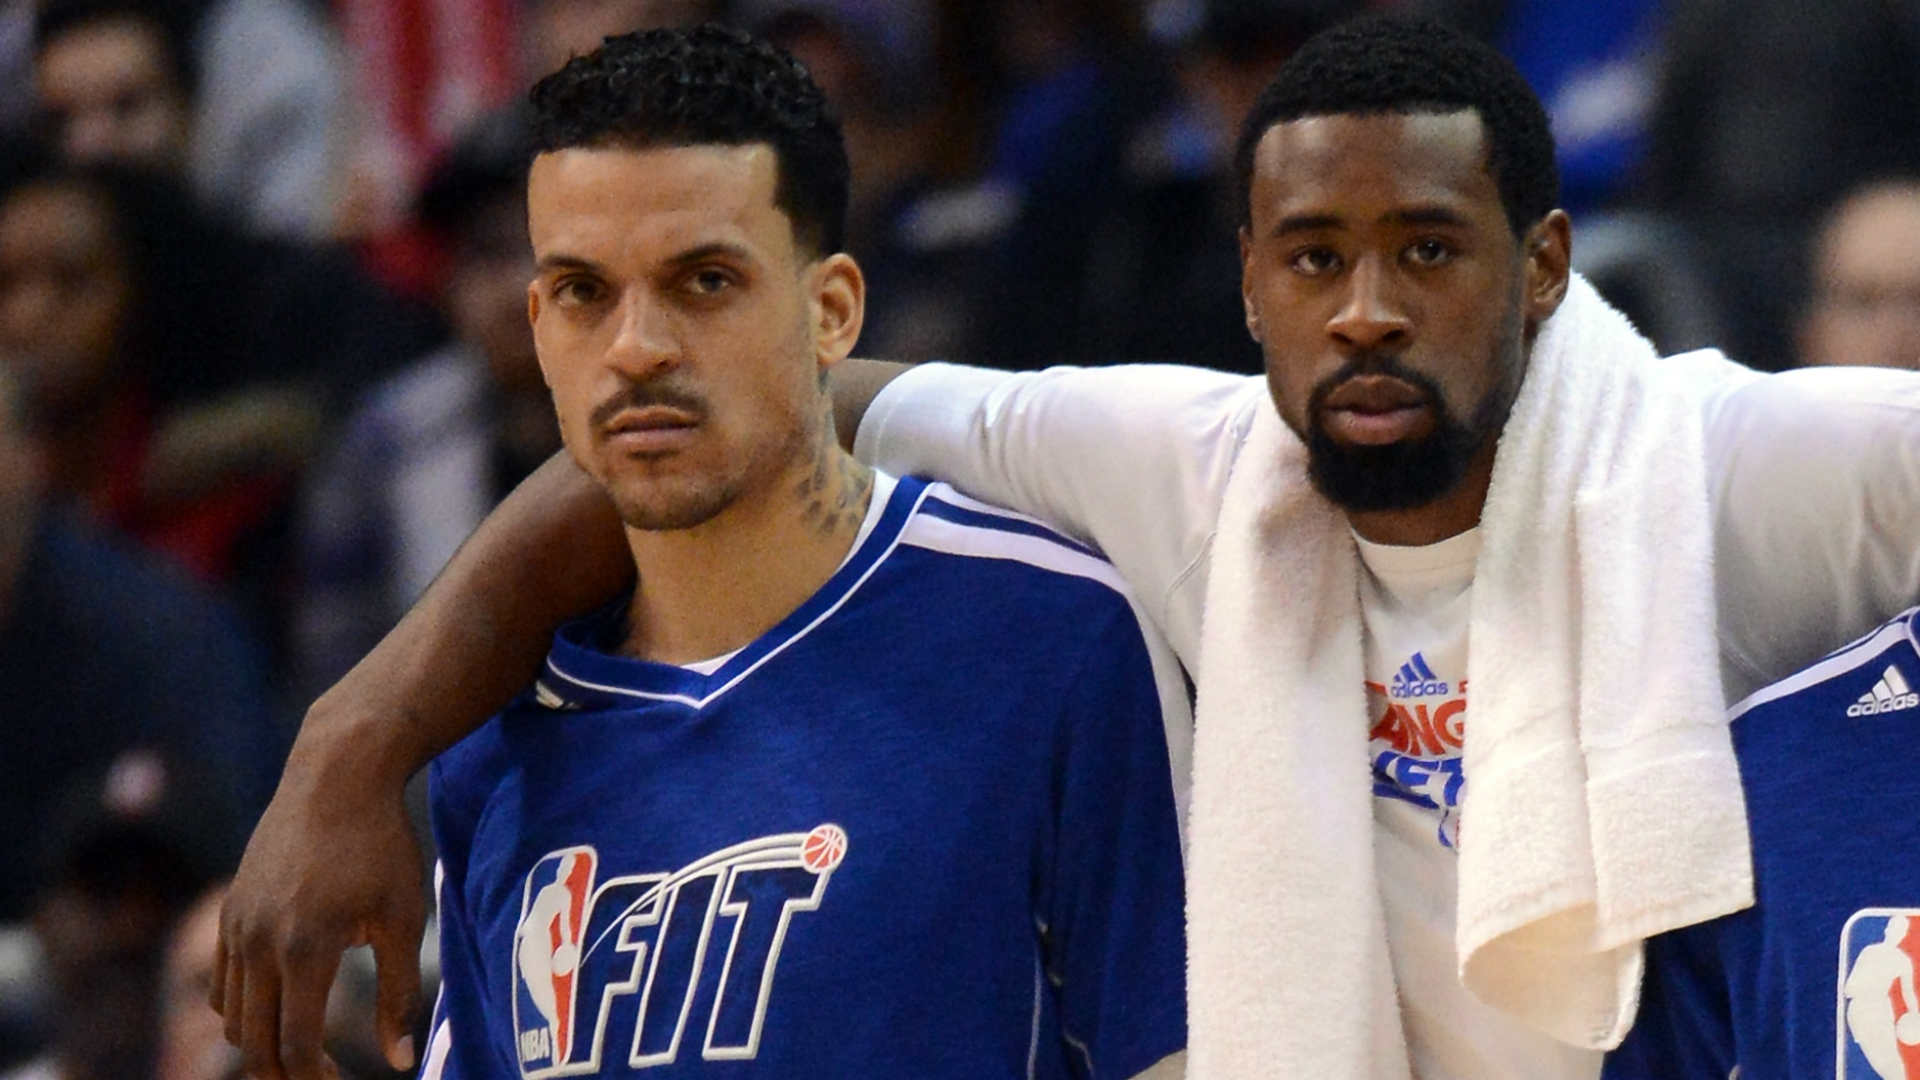 Matt Barnes says he will 'foul the beep' out of DeAndre Jordan